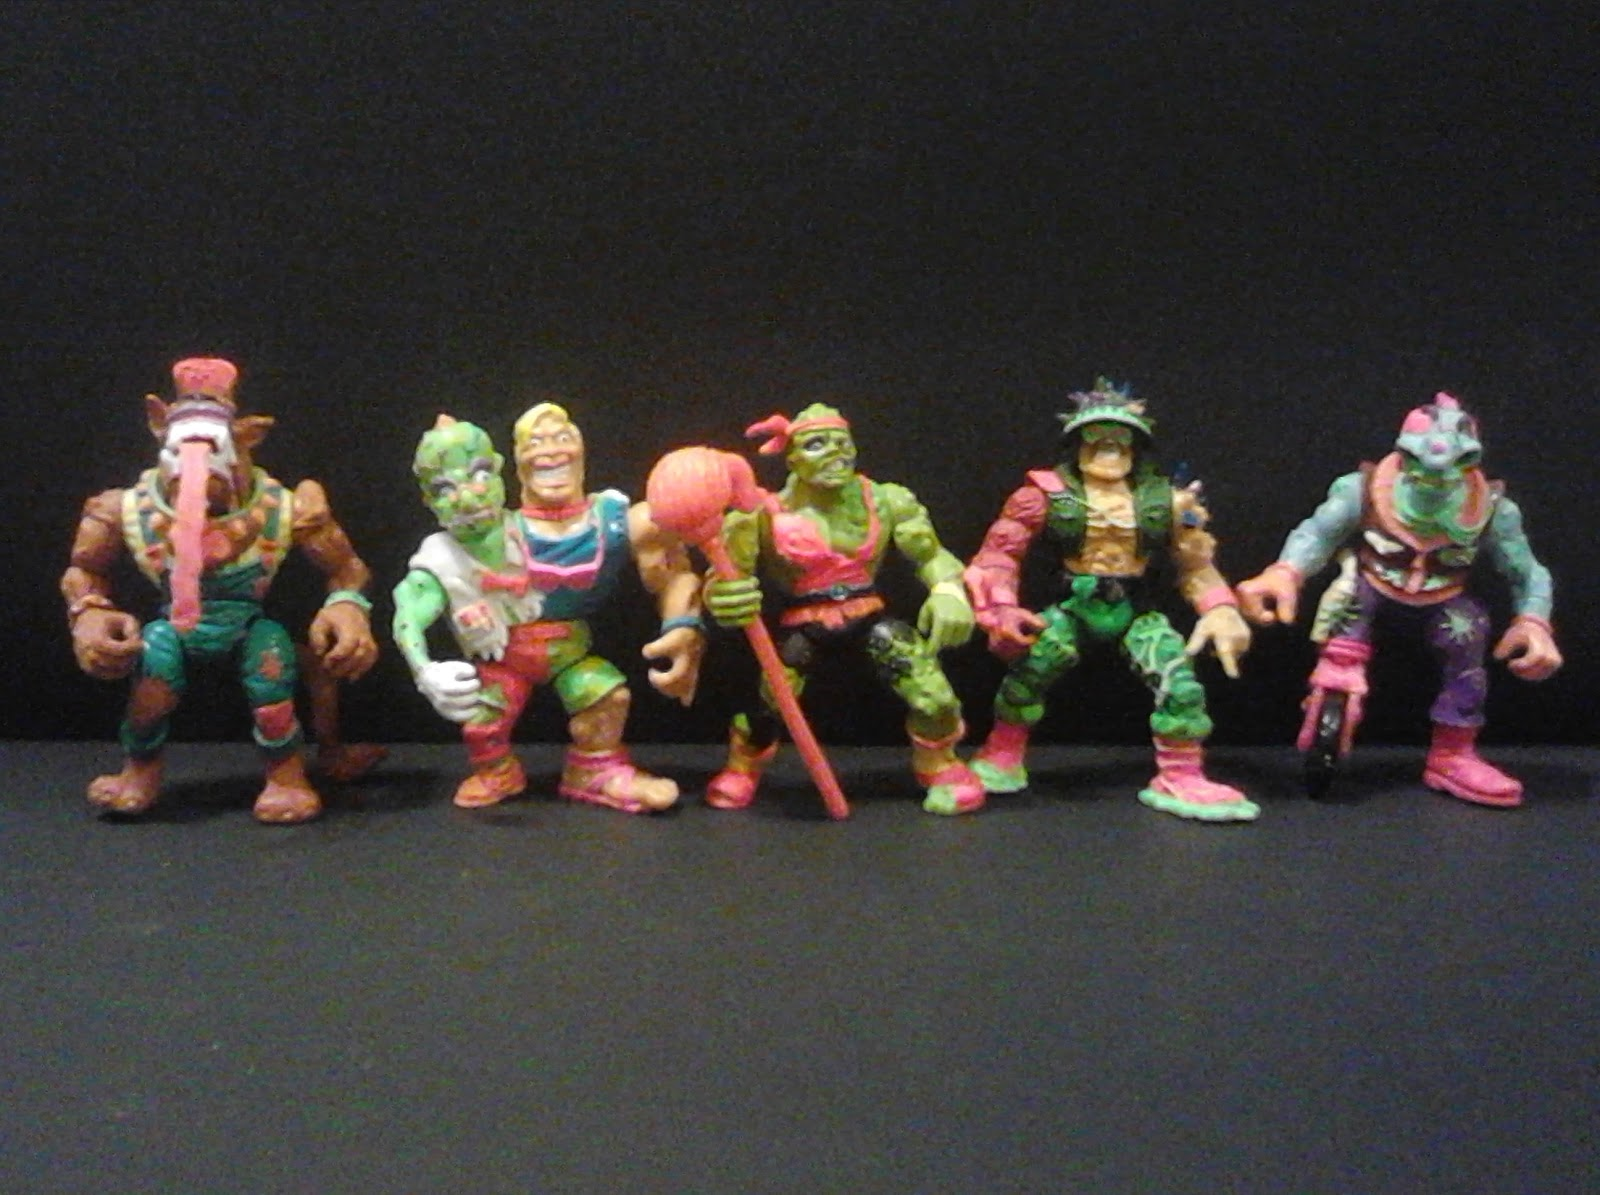 90s Toys  List of NostalgiaInducing Toys from the 1990s